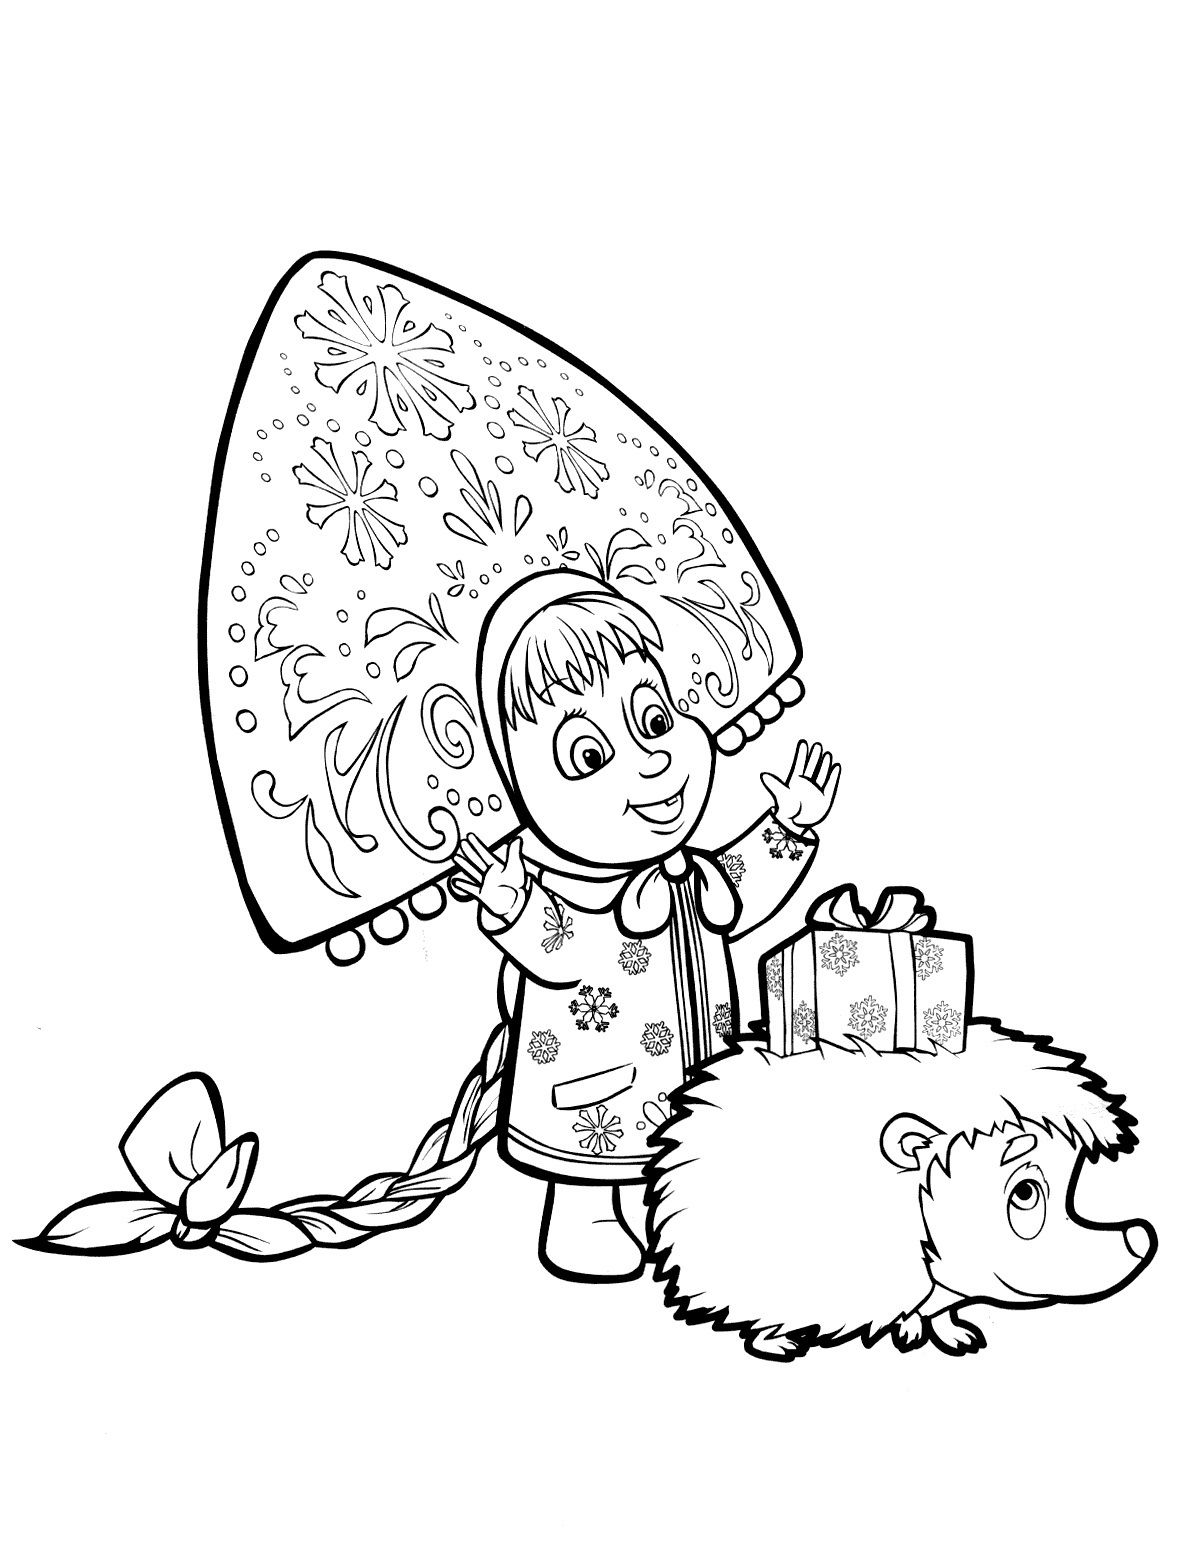 masha i medved coloring pages - photo#29